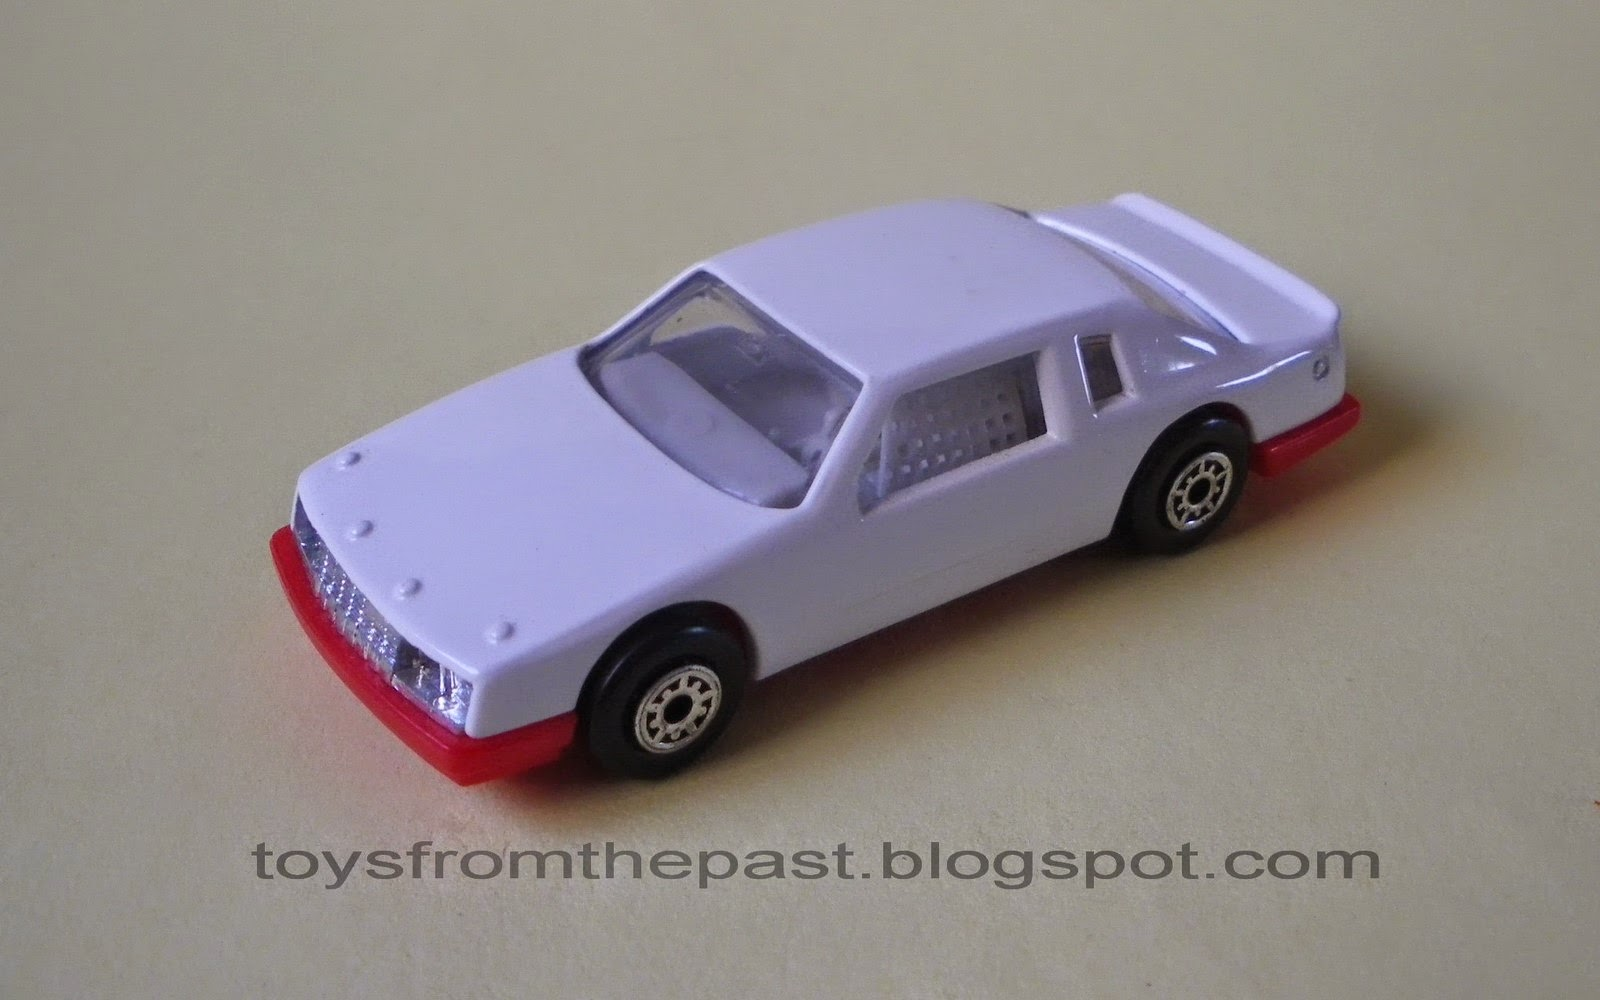 Toys From The Past EDOCAR BUICK LESARRE STOCK CAR Nr - Buick stock